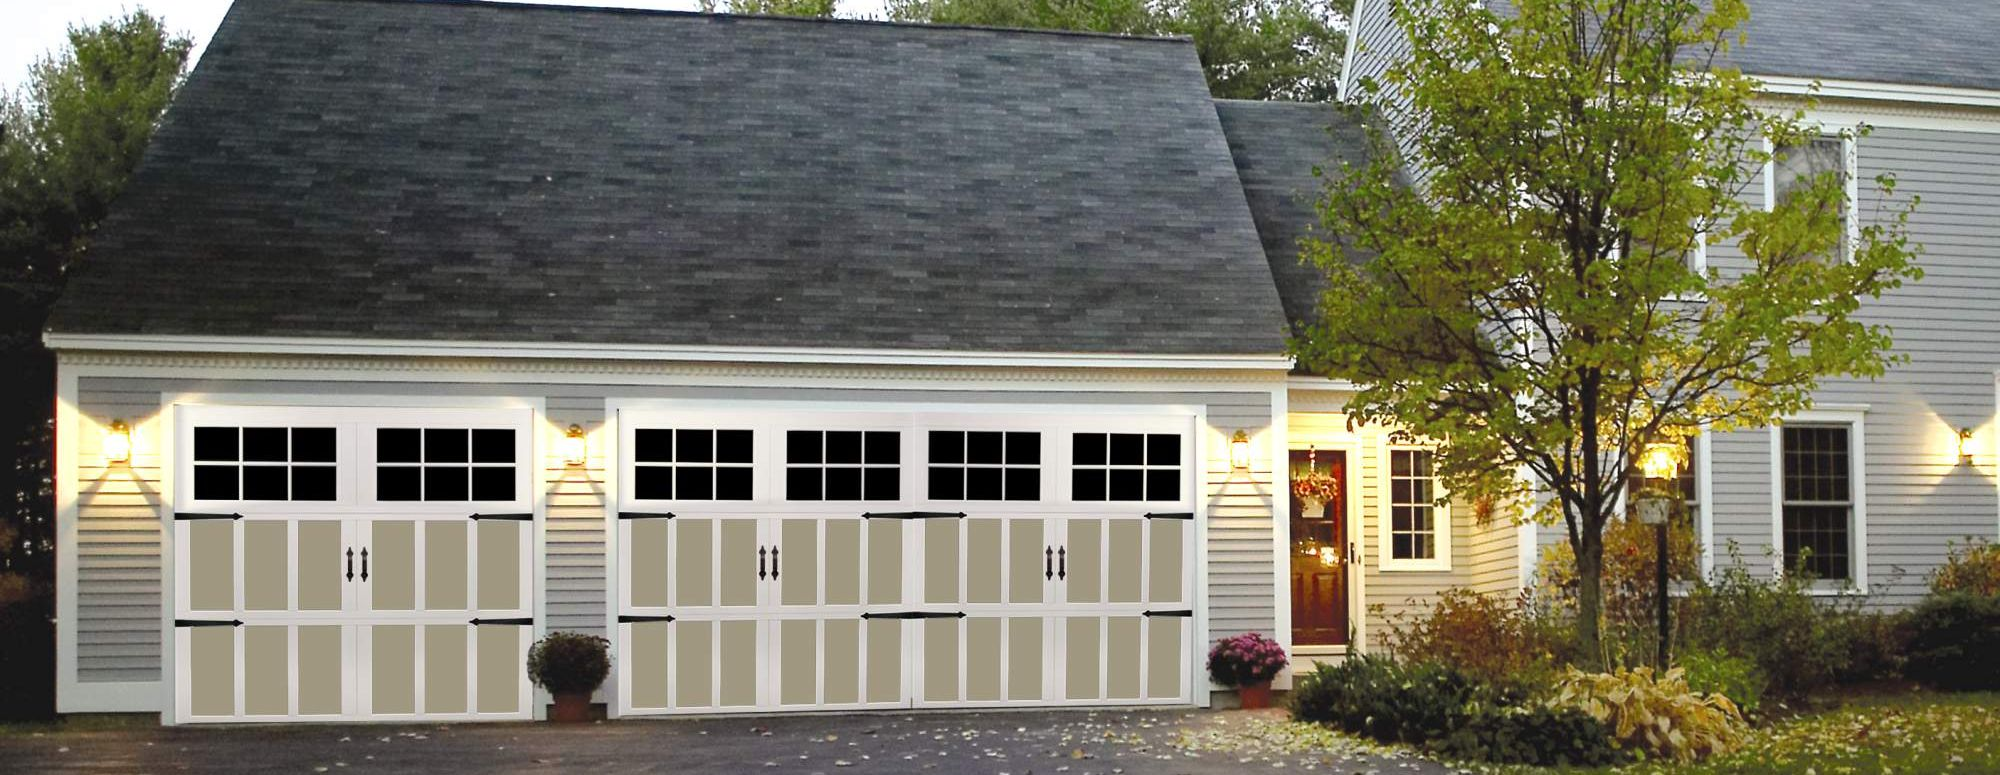 Carriage House Collection Garage Doors Overhead Door Company Of Chattanooga,Minnie Mouse Cake Design Soft Icing